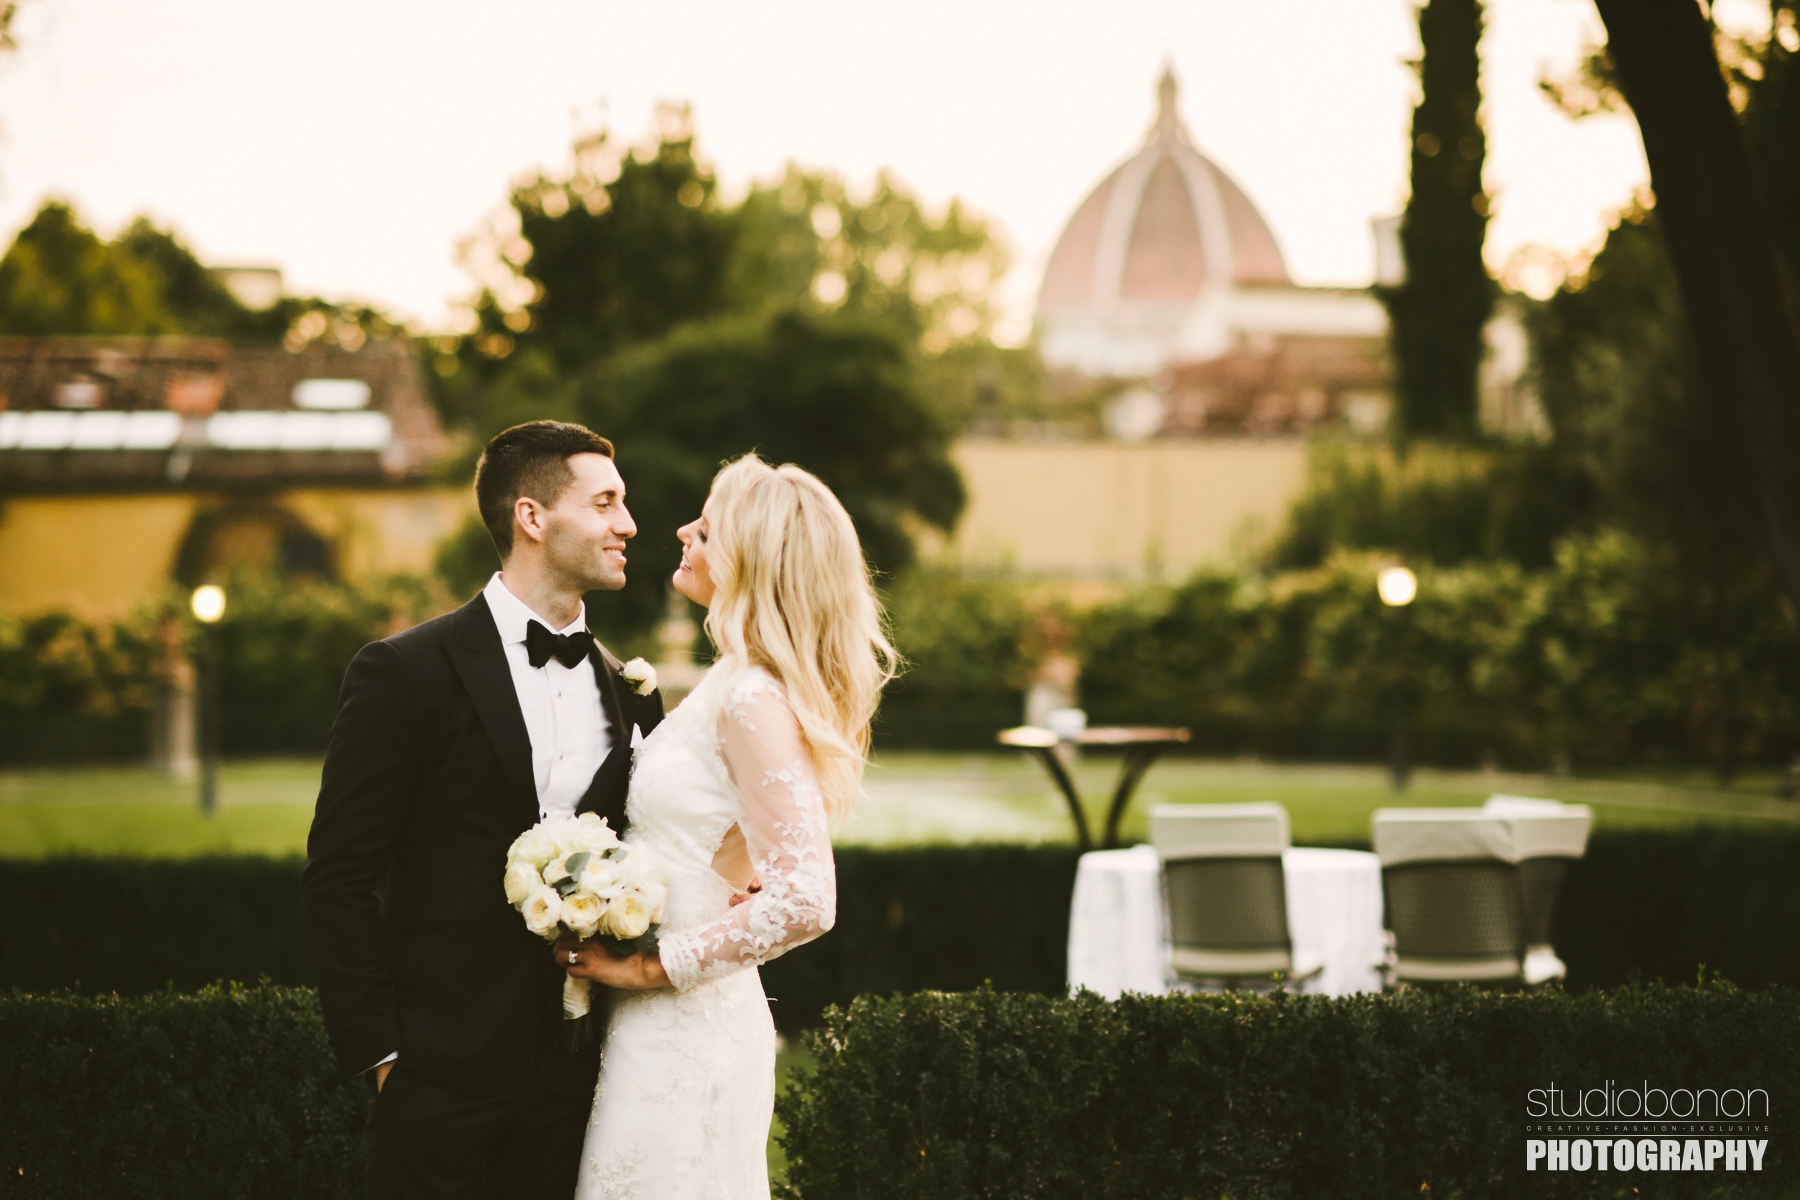 Elegant wedding photo with beautiful bride Amy and stunning groom Adrian with Florence Dome in the background